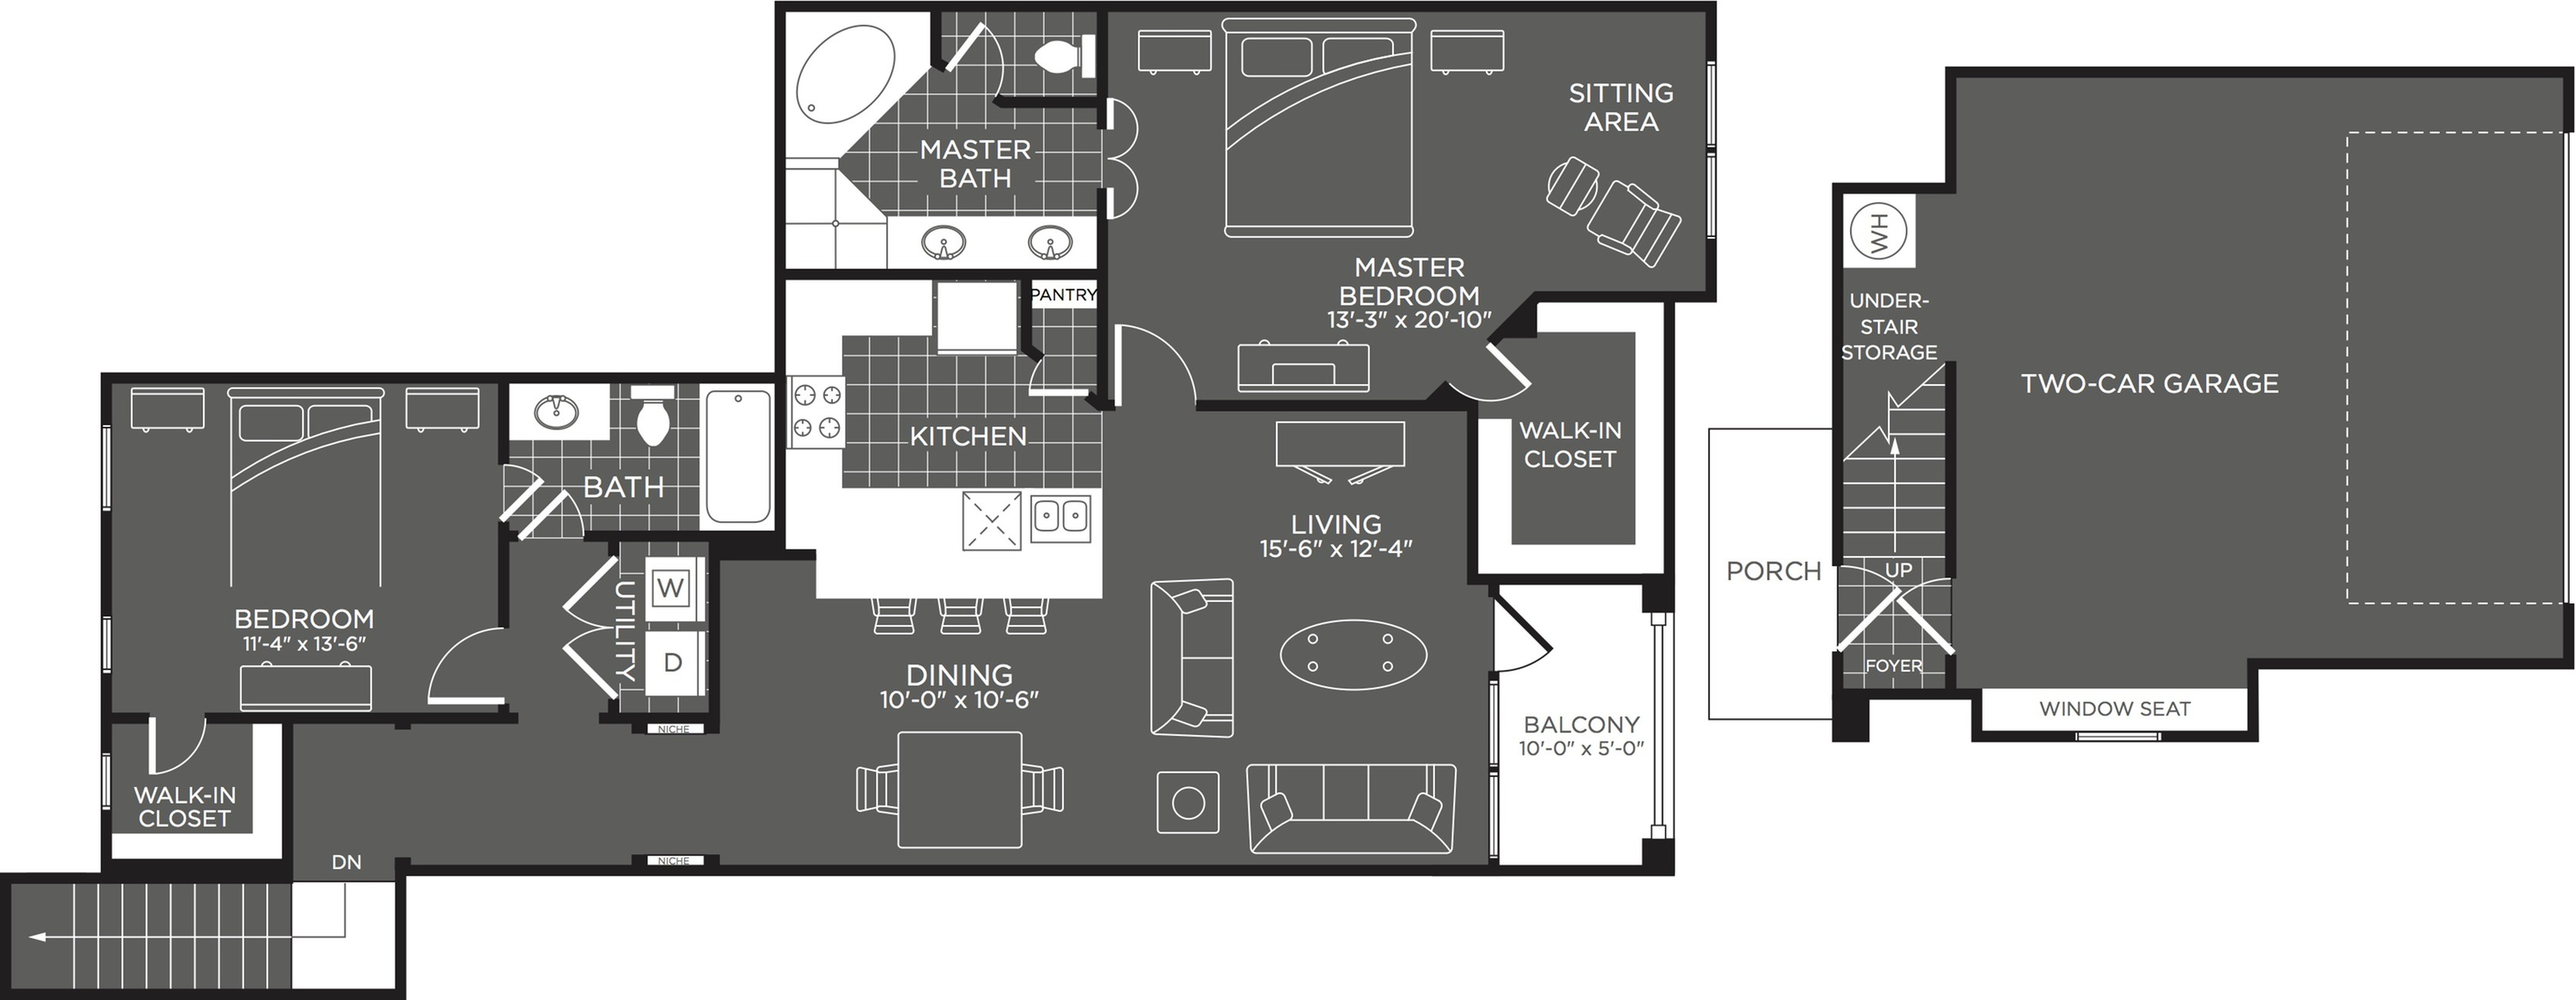 Floor Plan 5 | 2 Bedroom Apartments In San Antonio | The Mansions at Briggs Ranch